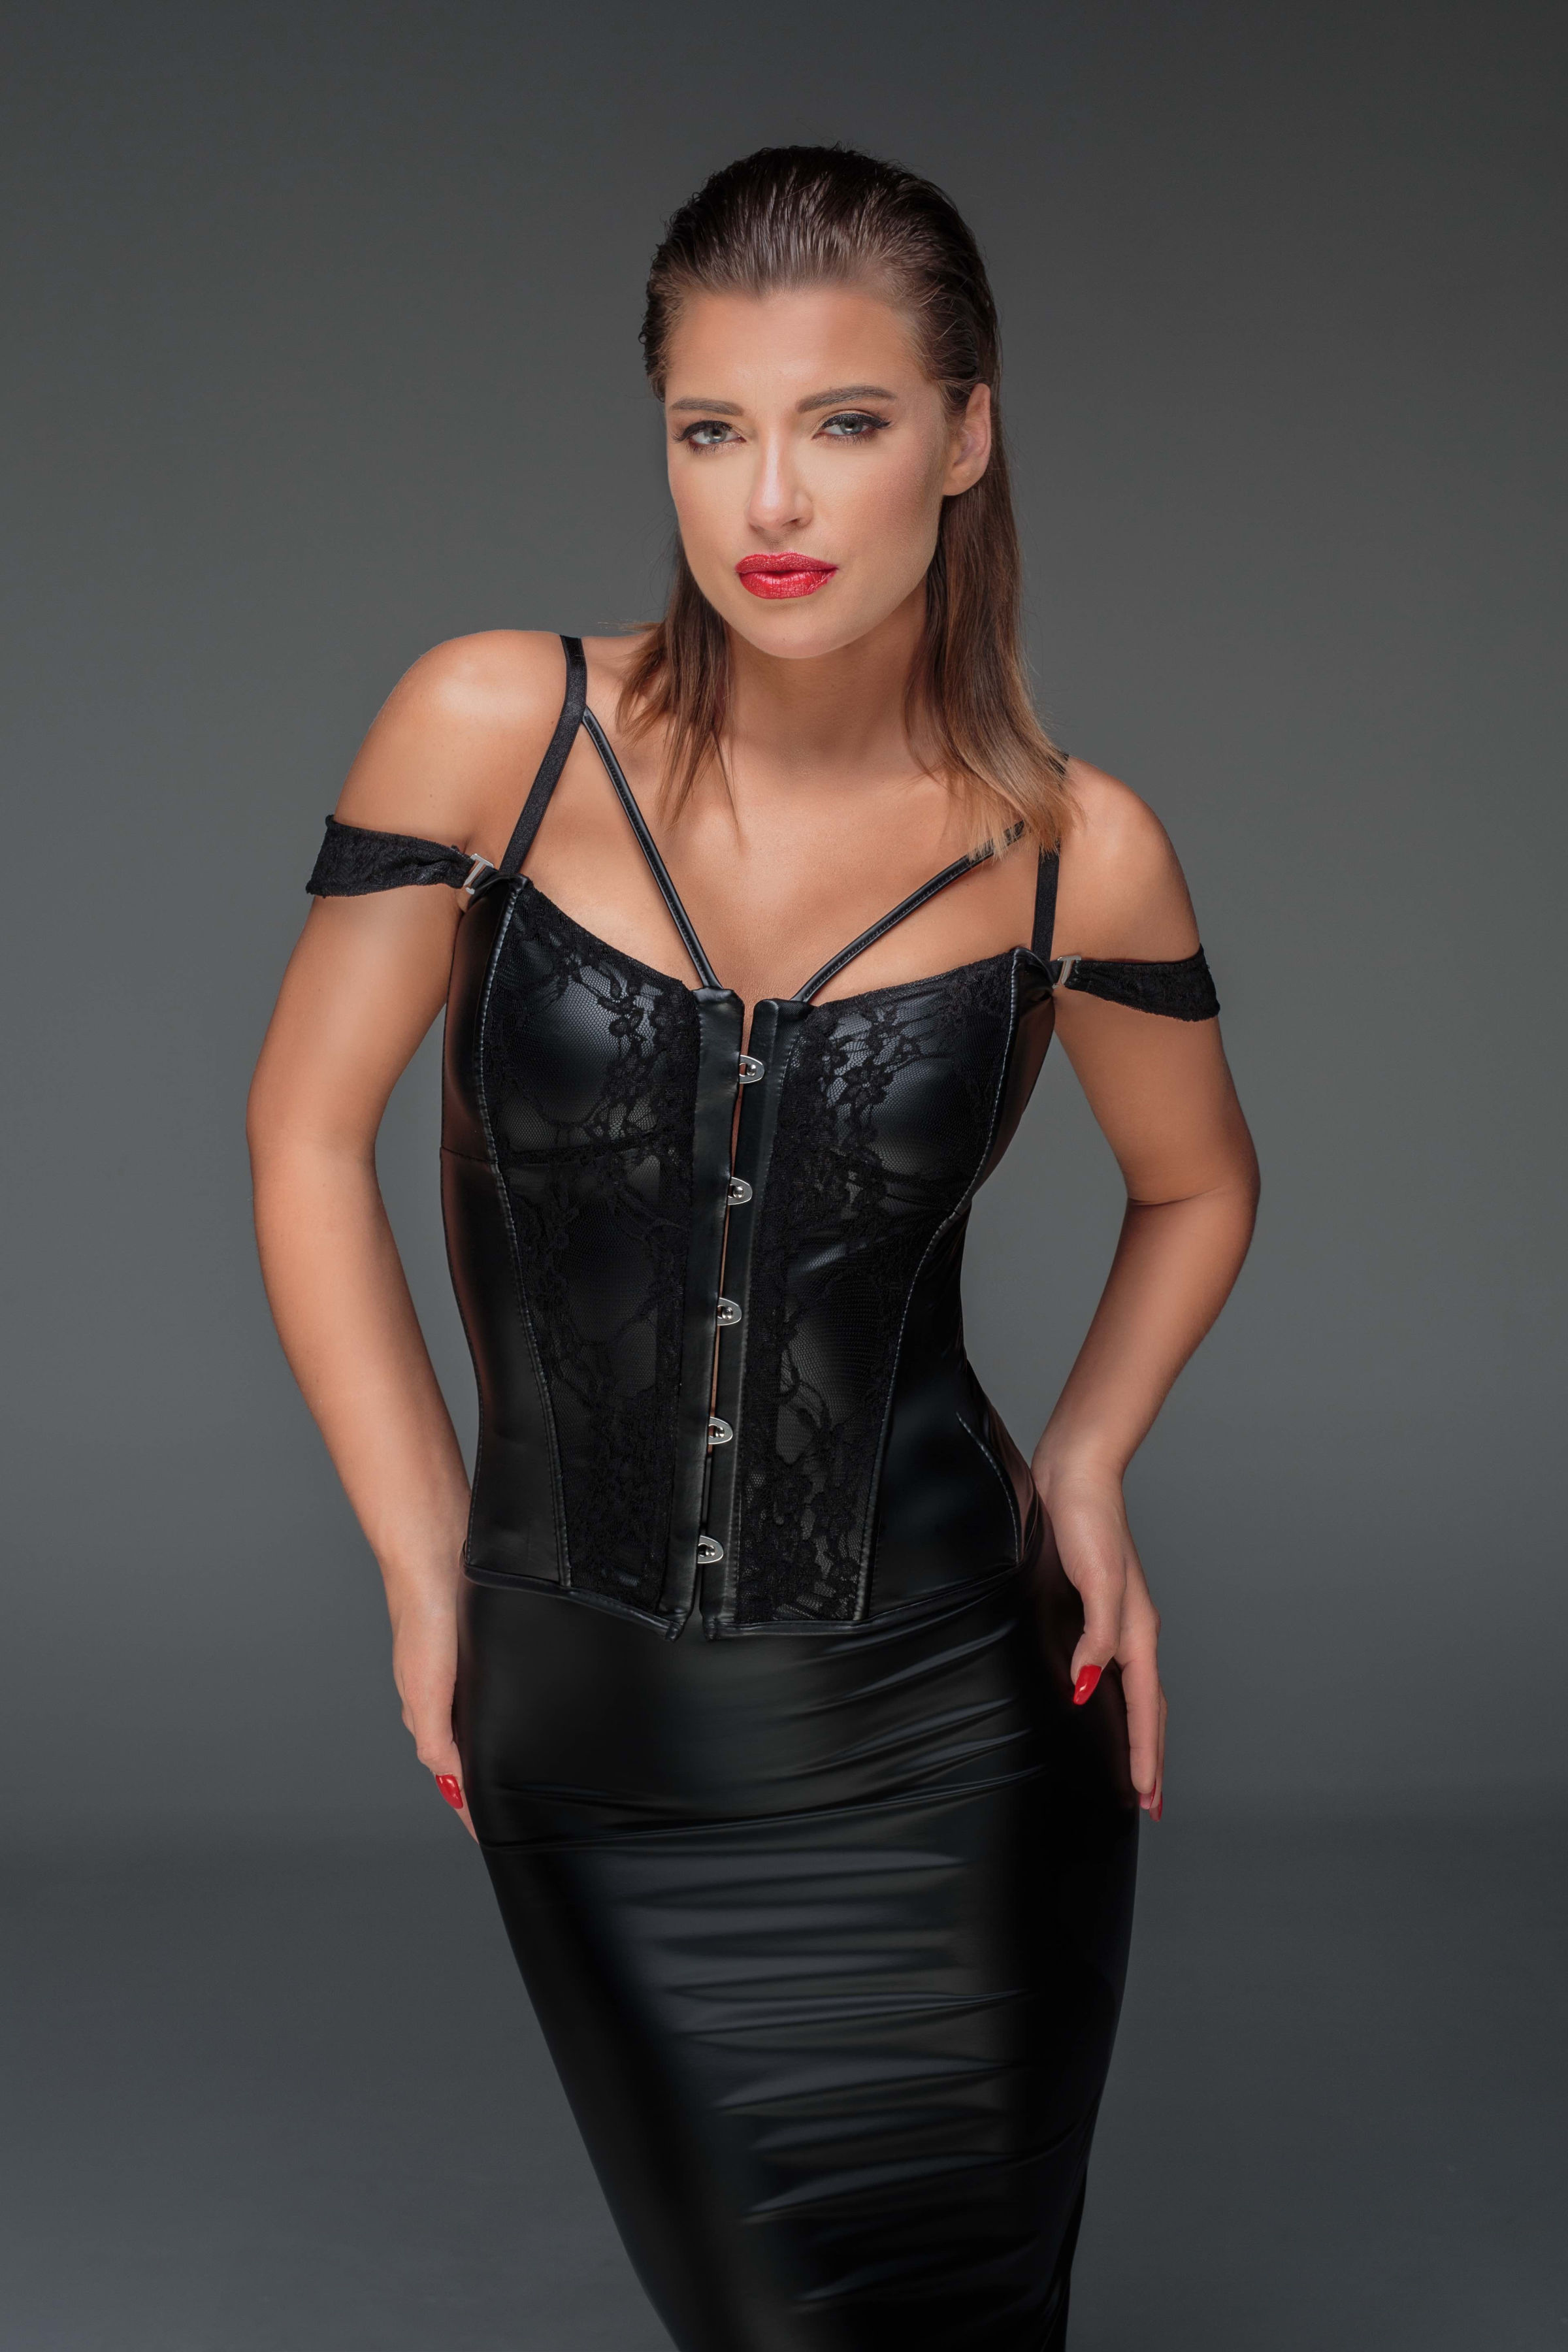 Noir Handmade F159 Corset with Lace and Powerwetlook with Detachable Straps S